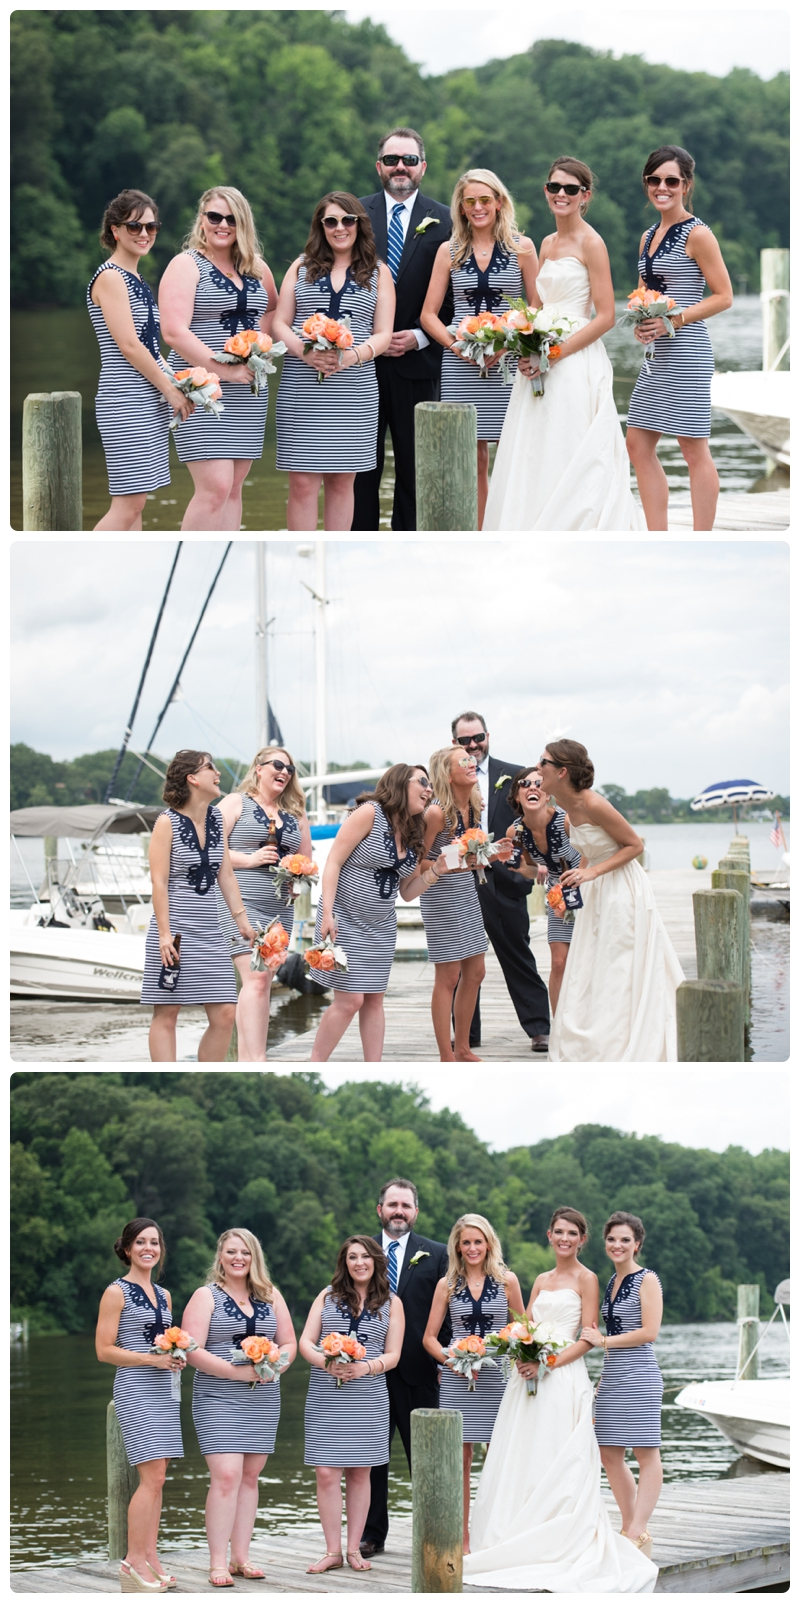 Fourth of July Wedding on the Potmac by Rachael Foster Photography_0048.jpg